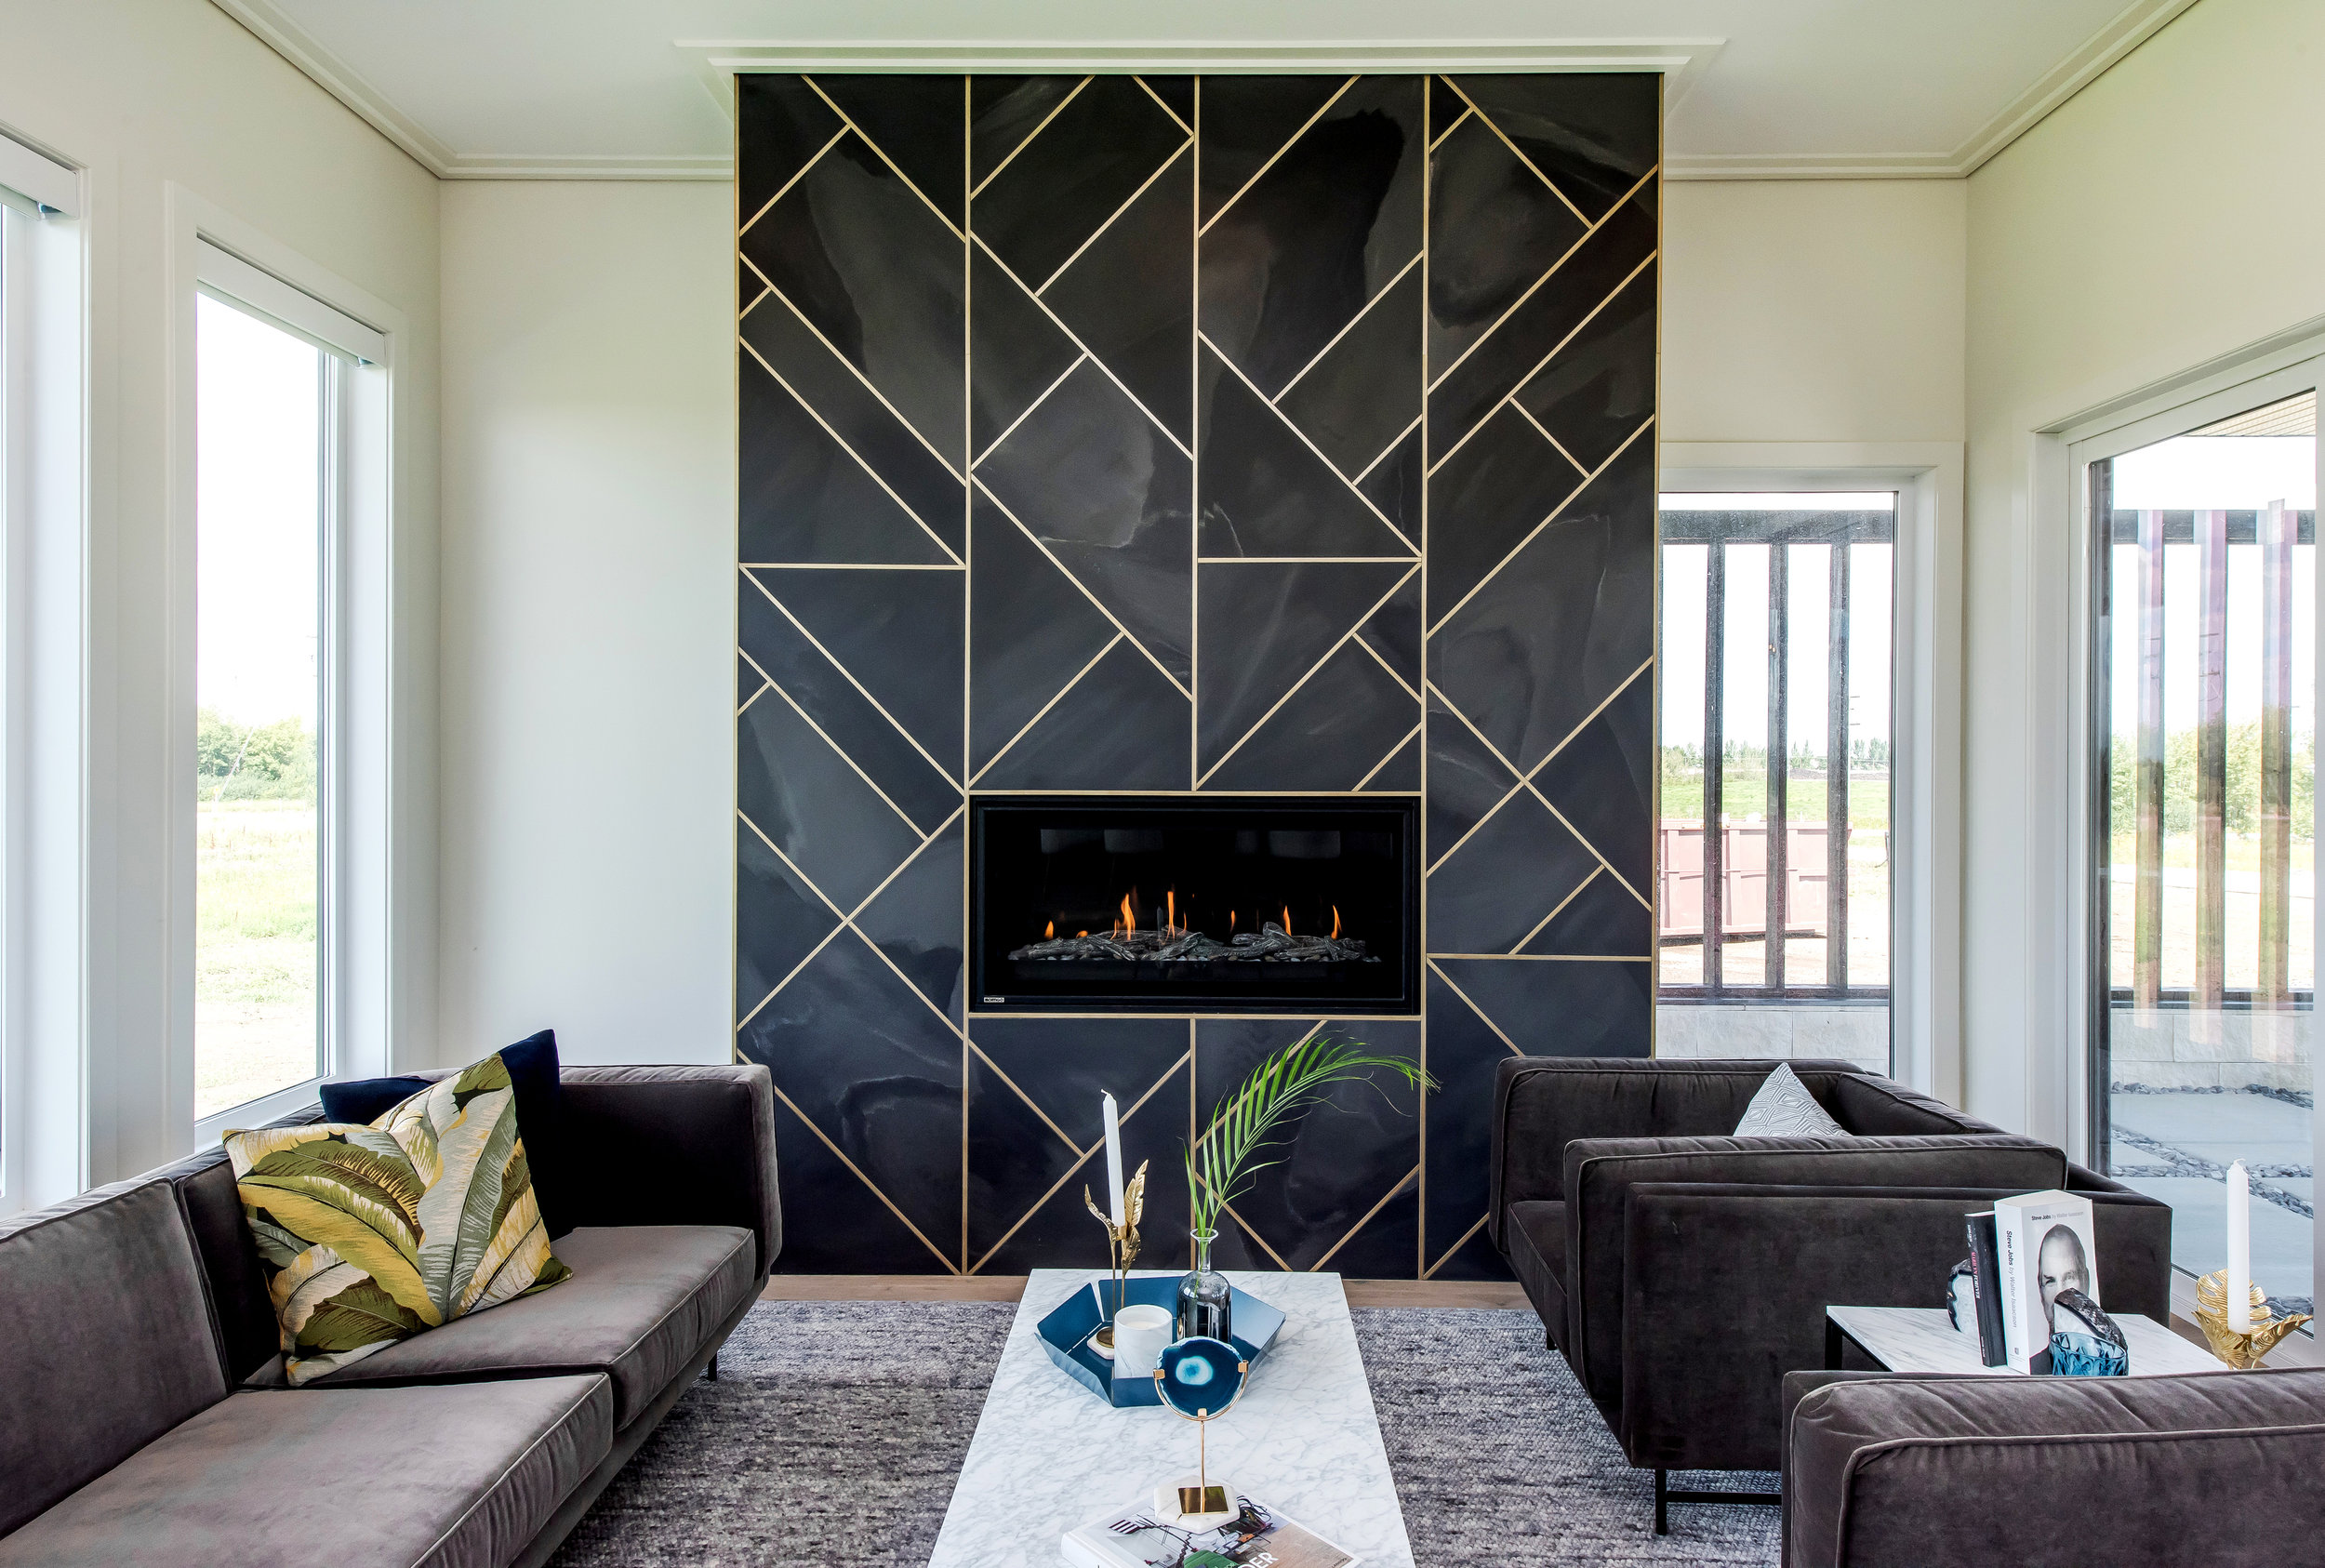 One of our favorite fireplace surrounds to date, this Hospital Home Lottery showhome in Greenbryre estates was the guinea pig for a design inspiration that was drawn from a powder room with great wallpaper